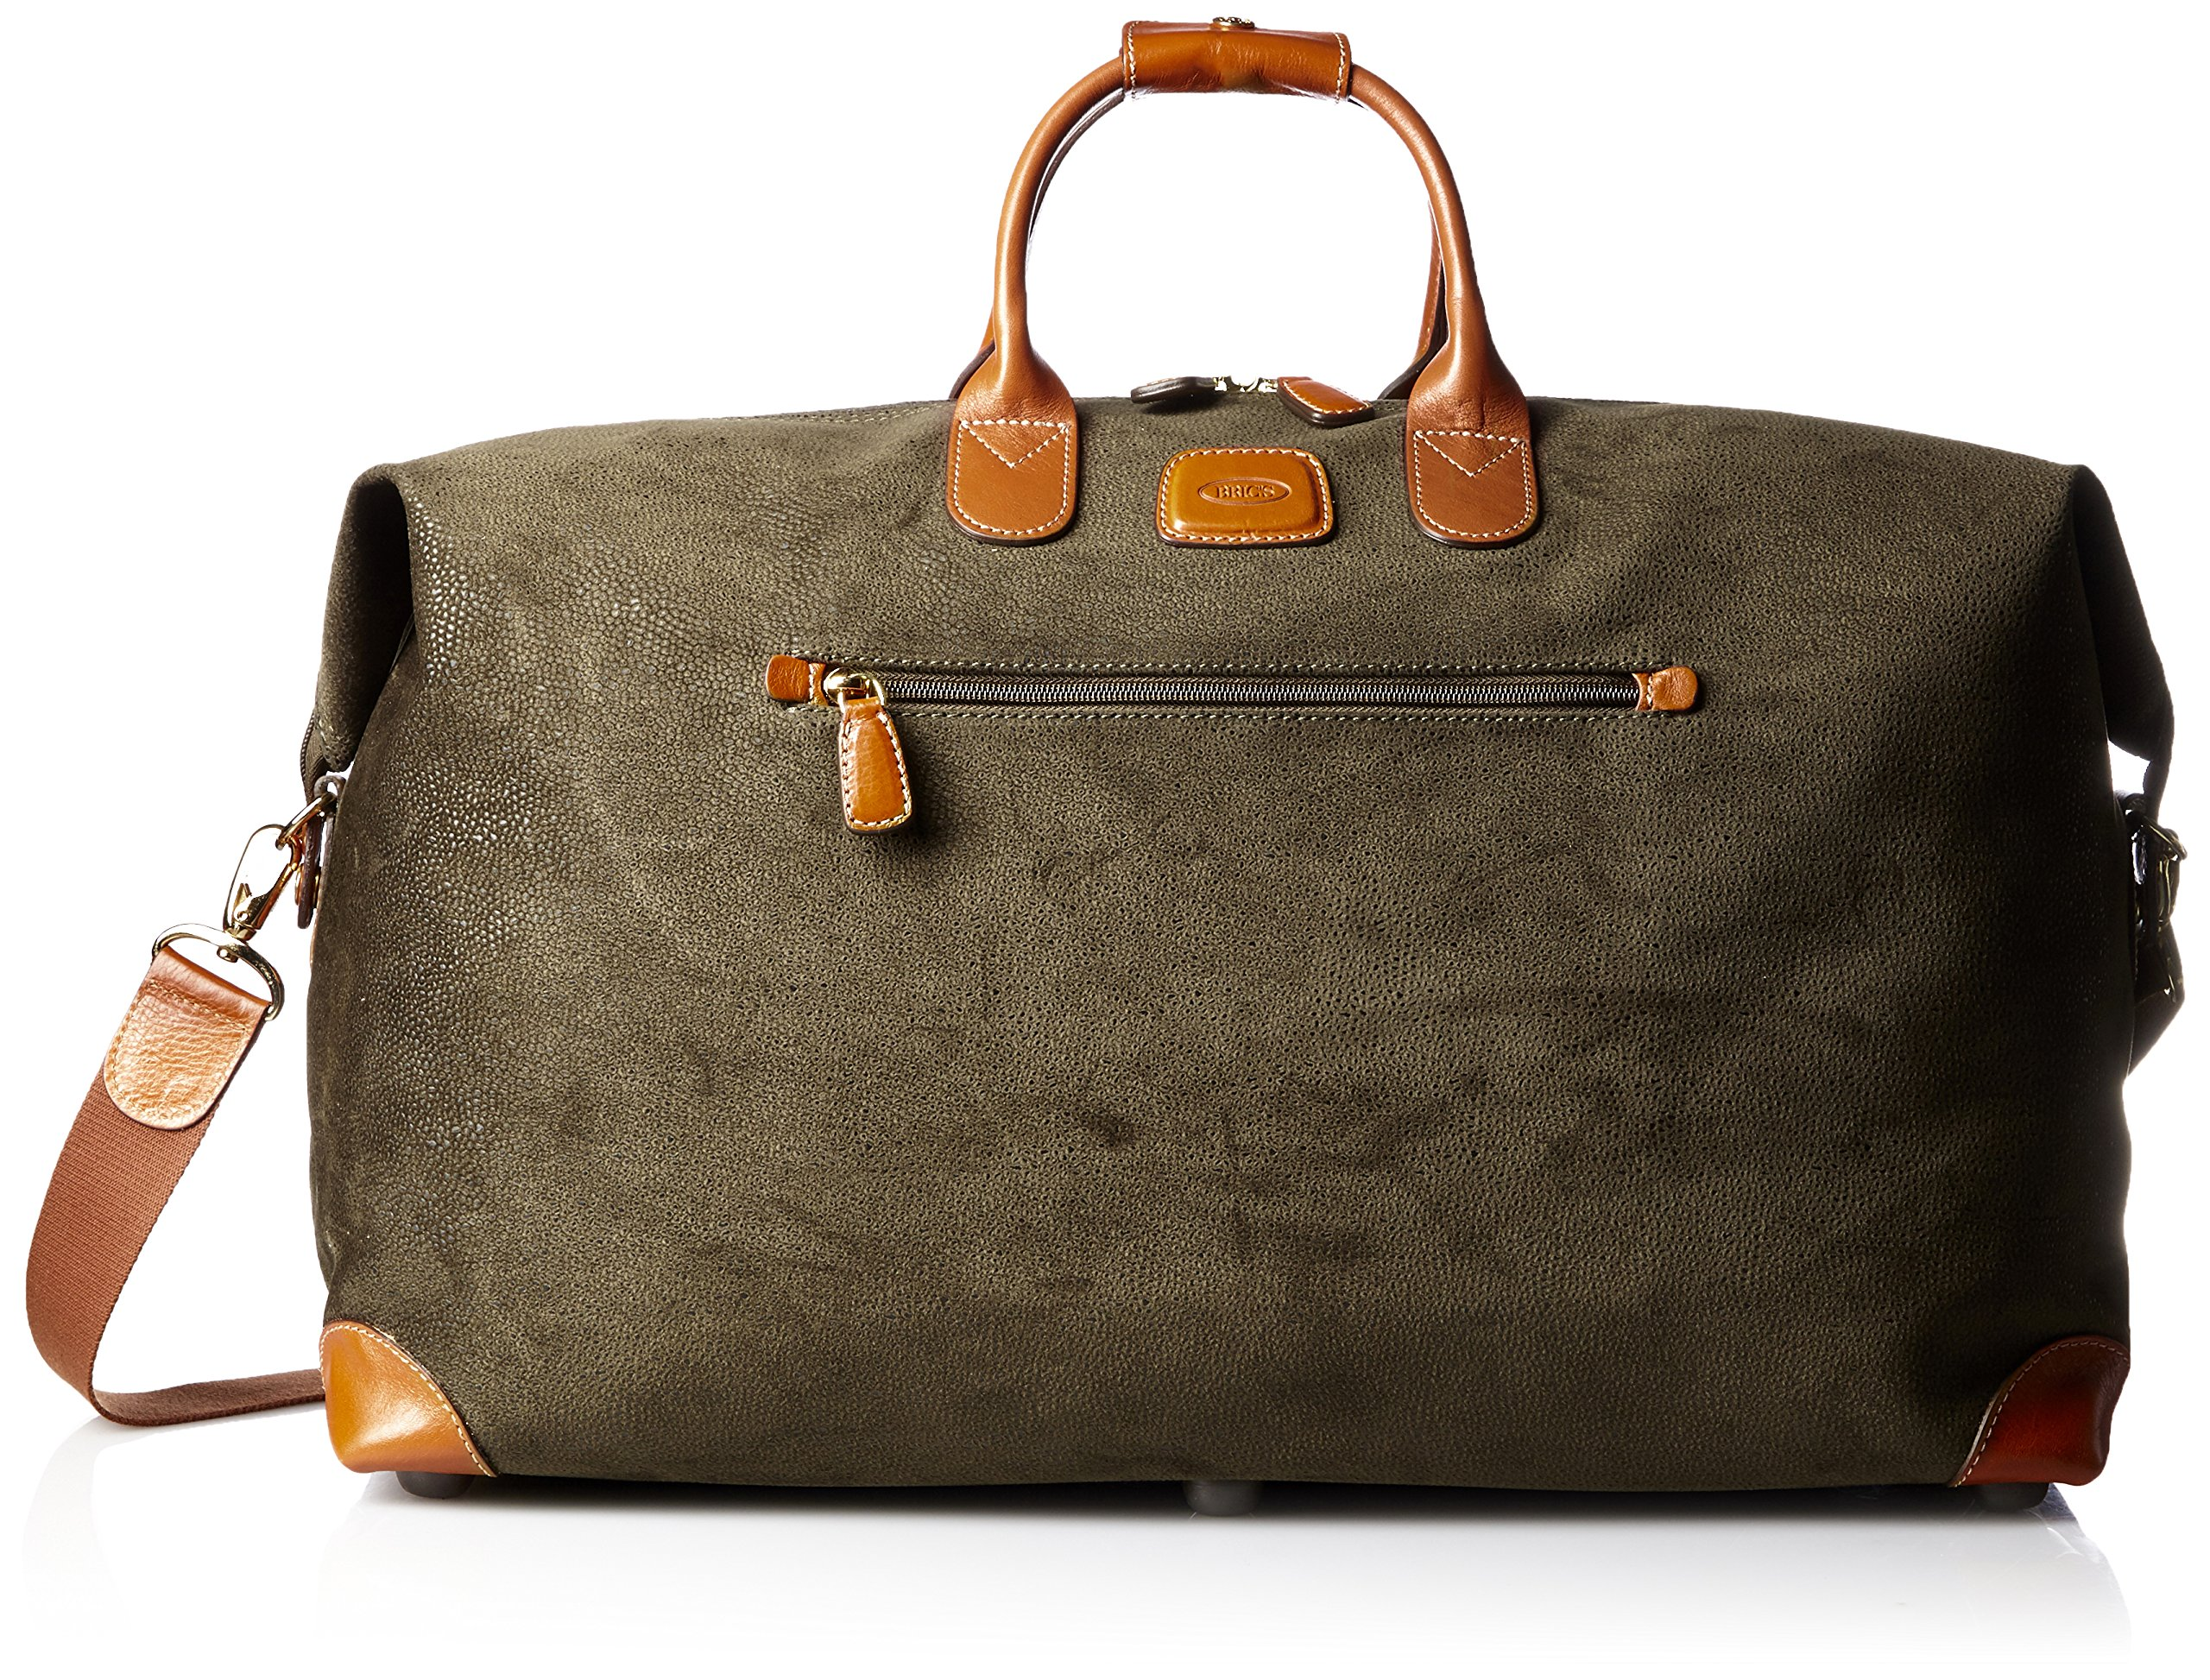 Bric's Luggage Life 22 Inch Cargo Duffle, Olive, One Size